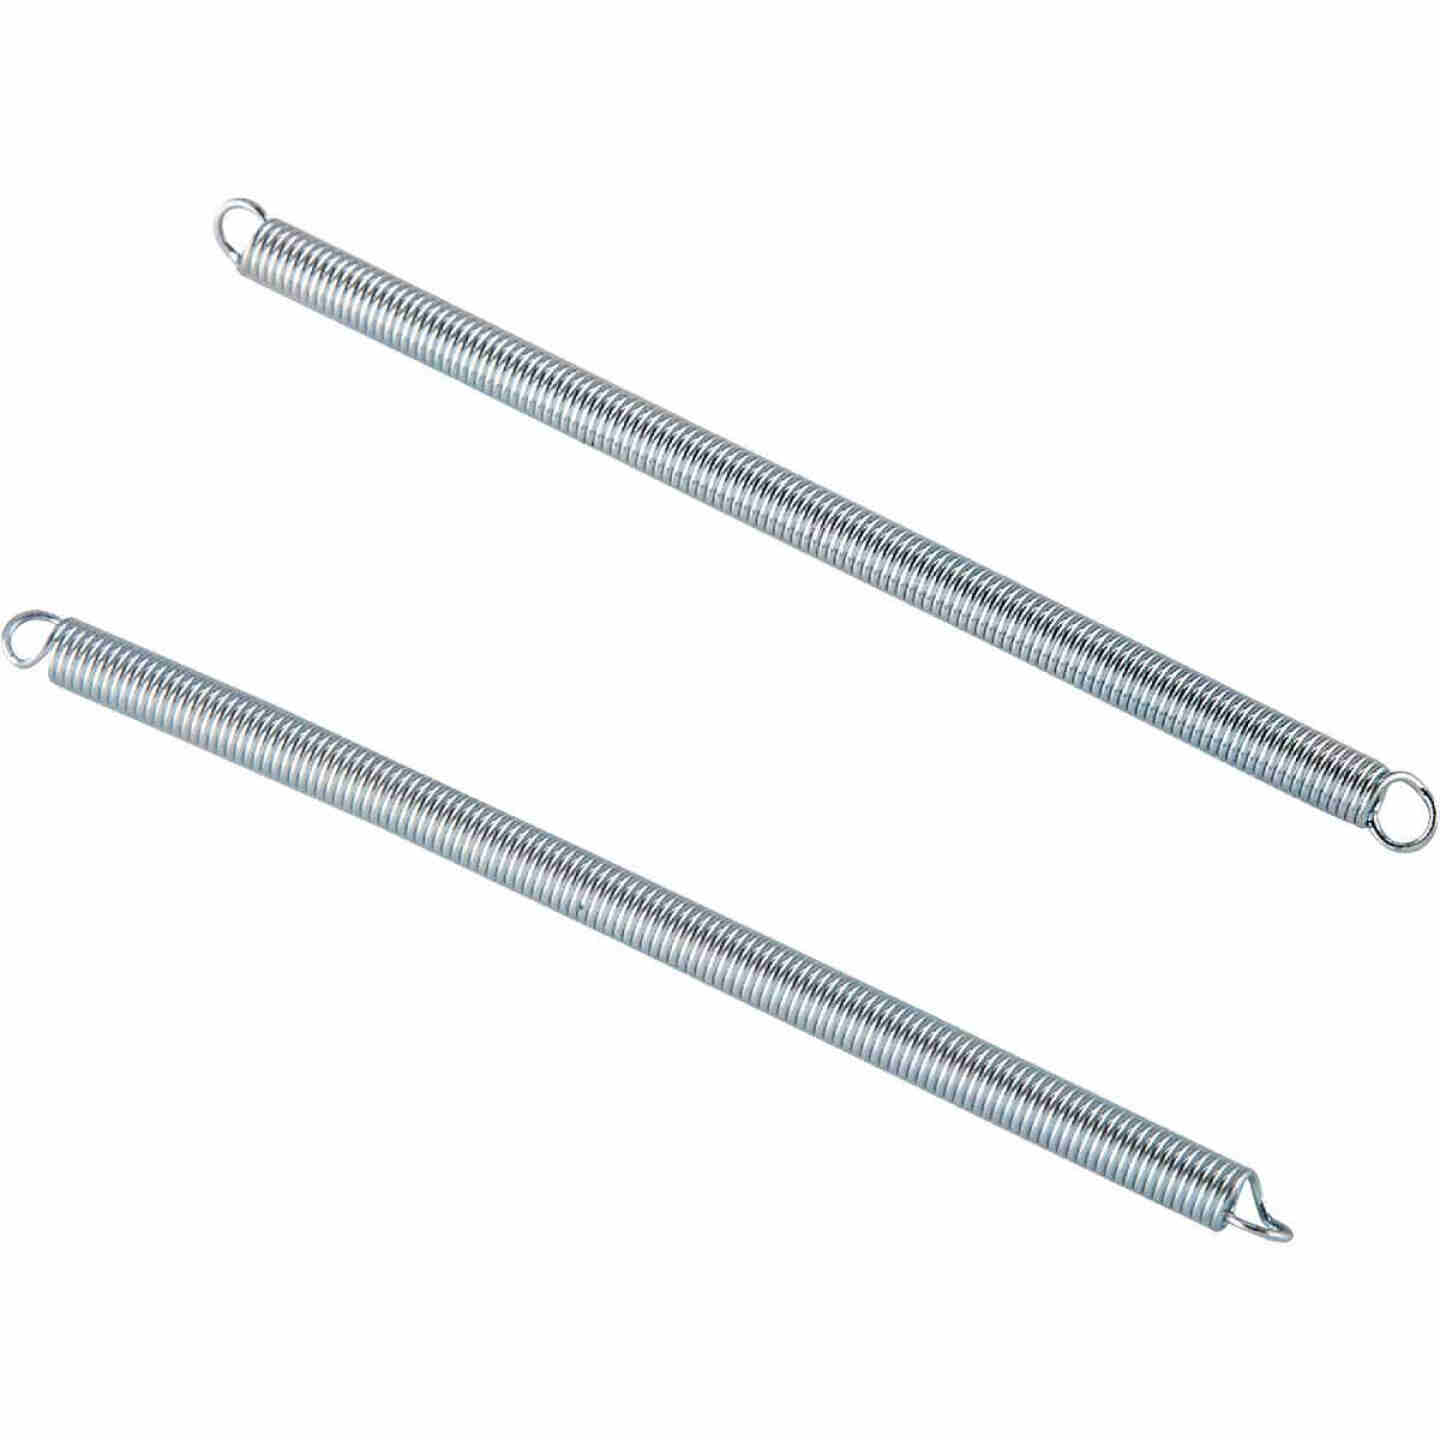 Century Spring 5 In. x 5/16 In. Extension Spring (2 Count) Image 1